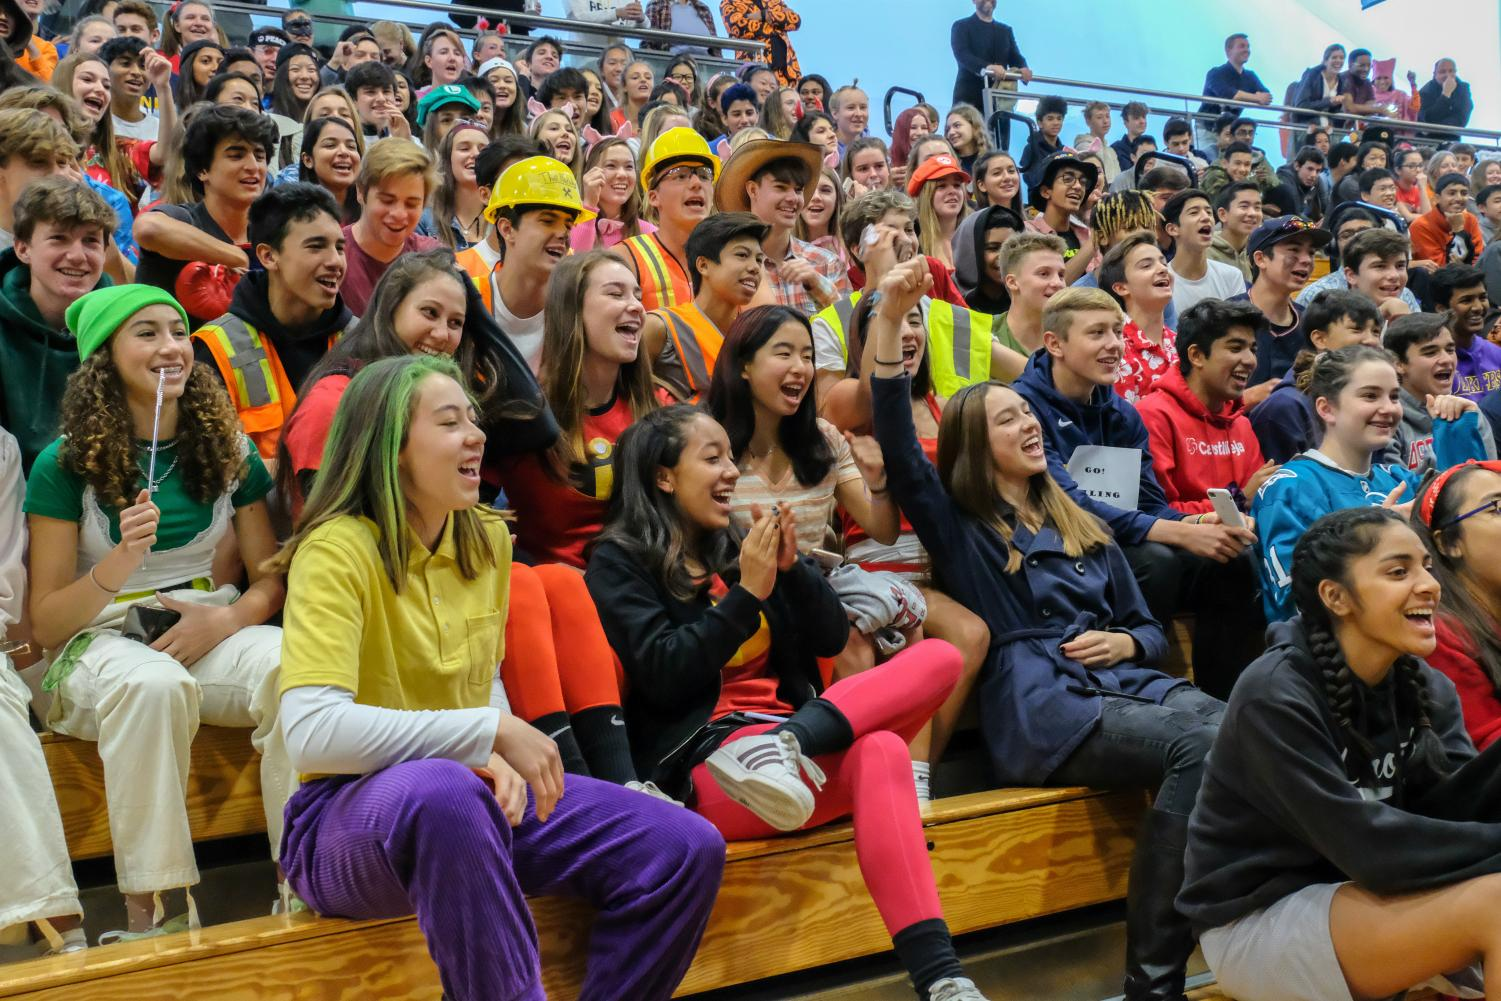 Sophomores cheer for participants in the costume competition. Categories included: scariest, funniest, best STEM, best fictional, best individual, and best grade. Photo Courtesy of Pete Zivkov.